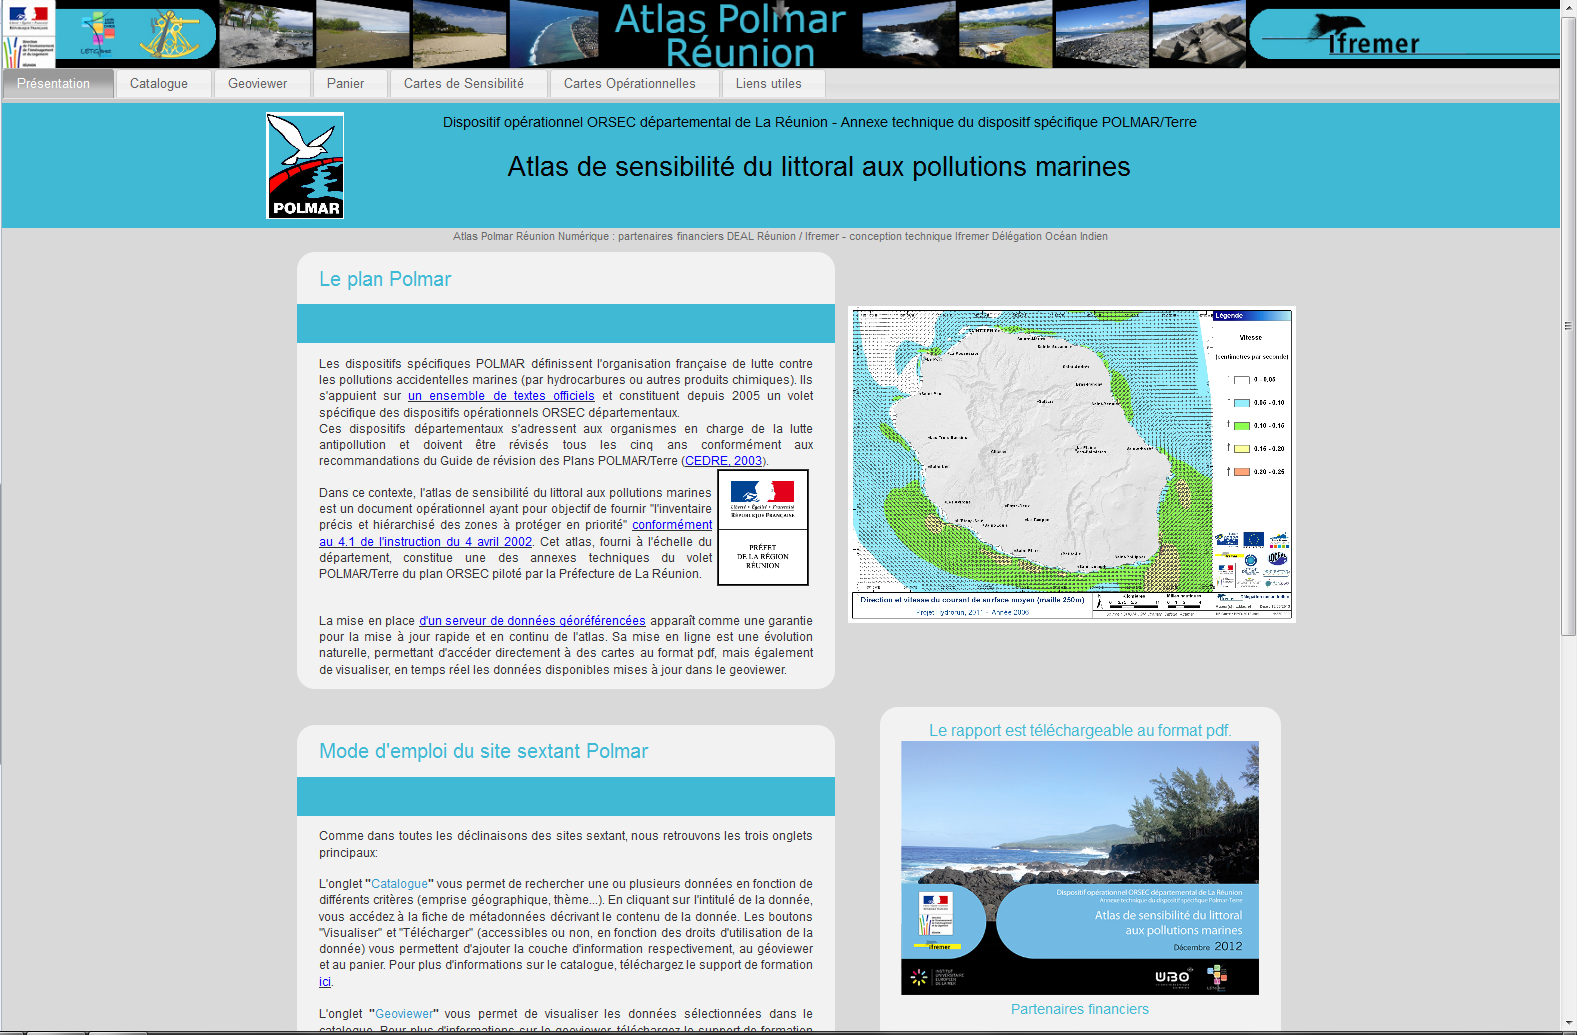 Atlas de sensibilité du littoral aux pollutions marines Polmar La Réunion